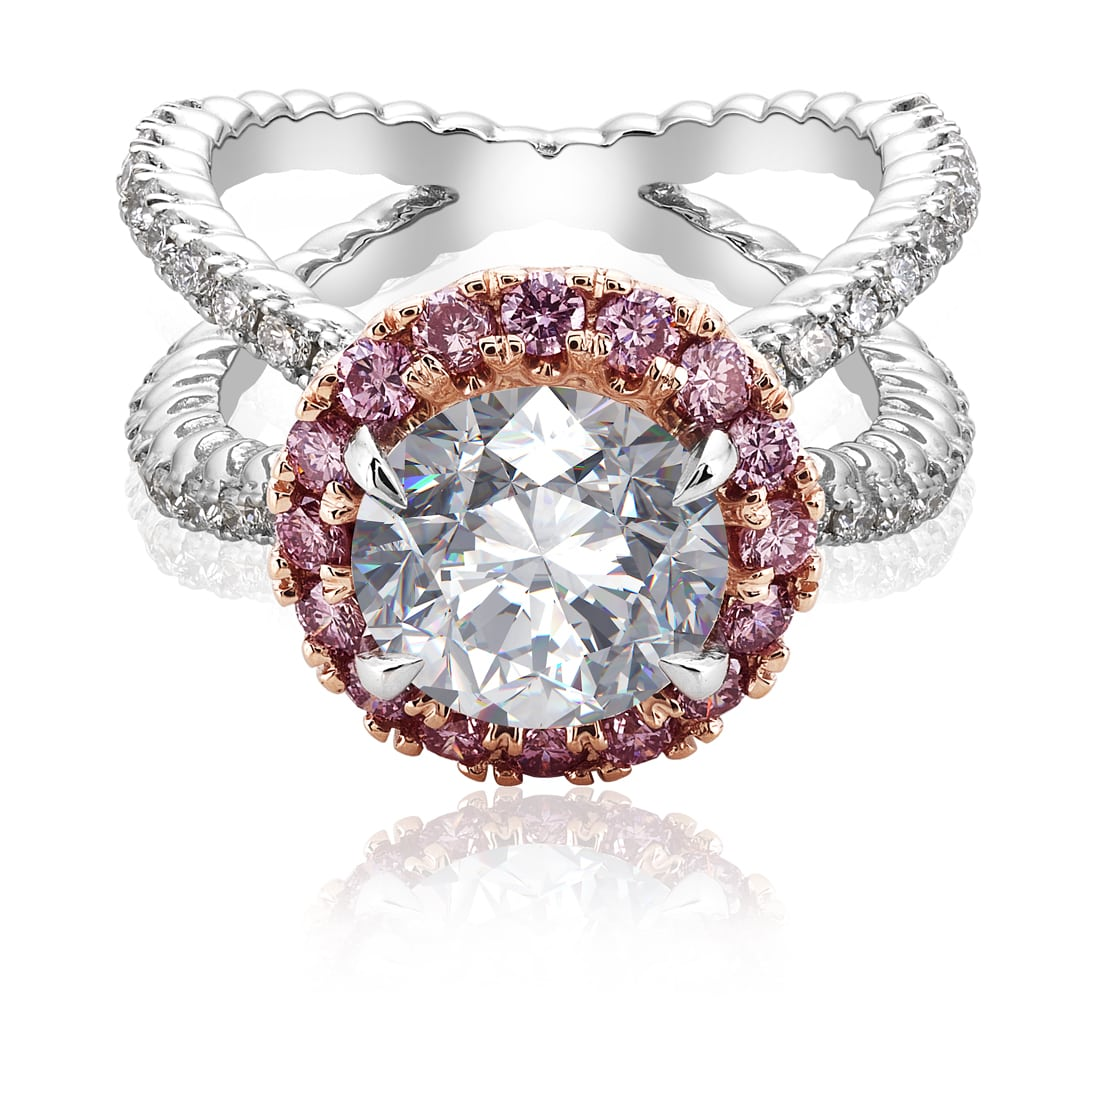 Top angle view of Large round diamond platinum ring with rose gold mounting holding pink diamonds surrounding center stone